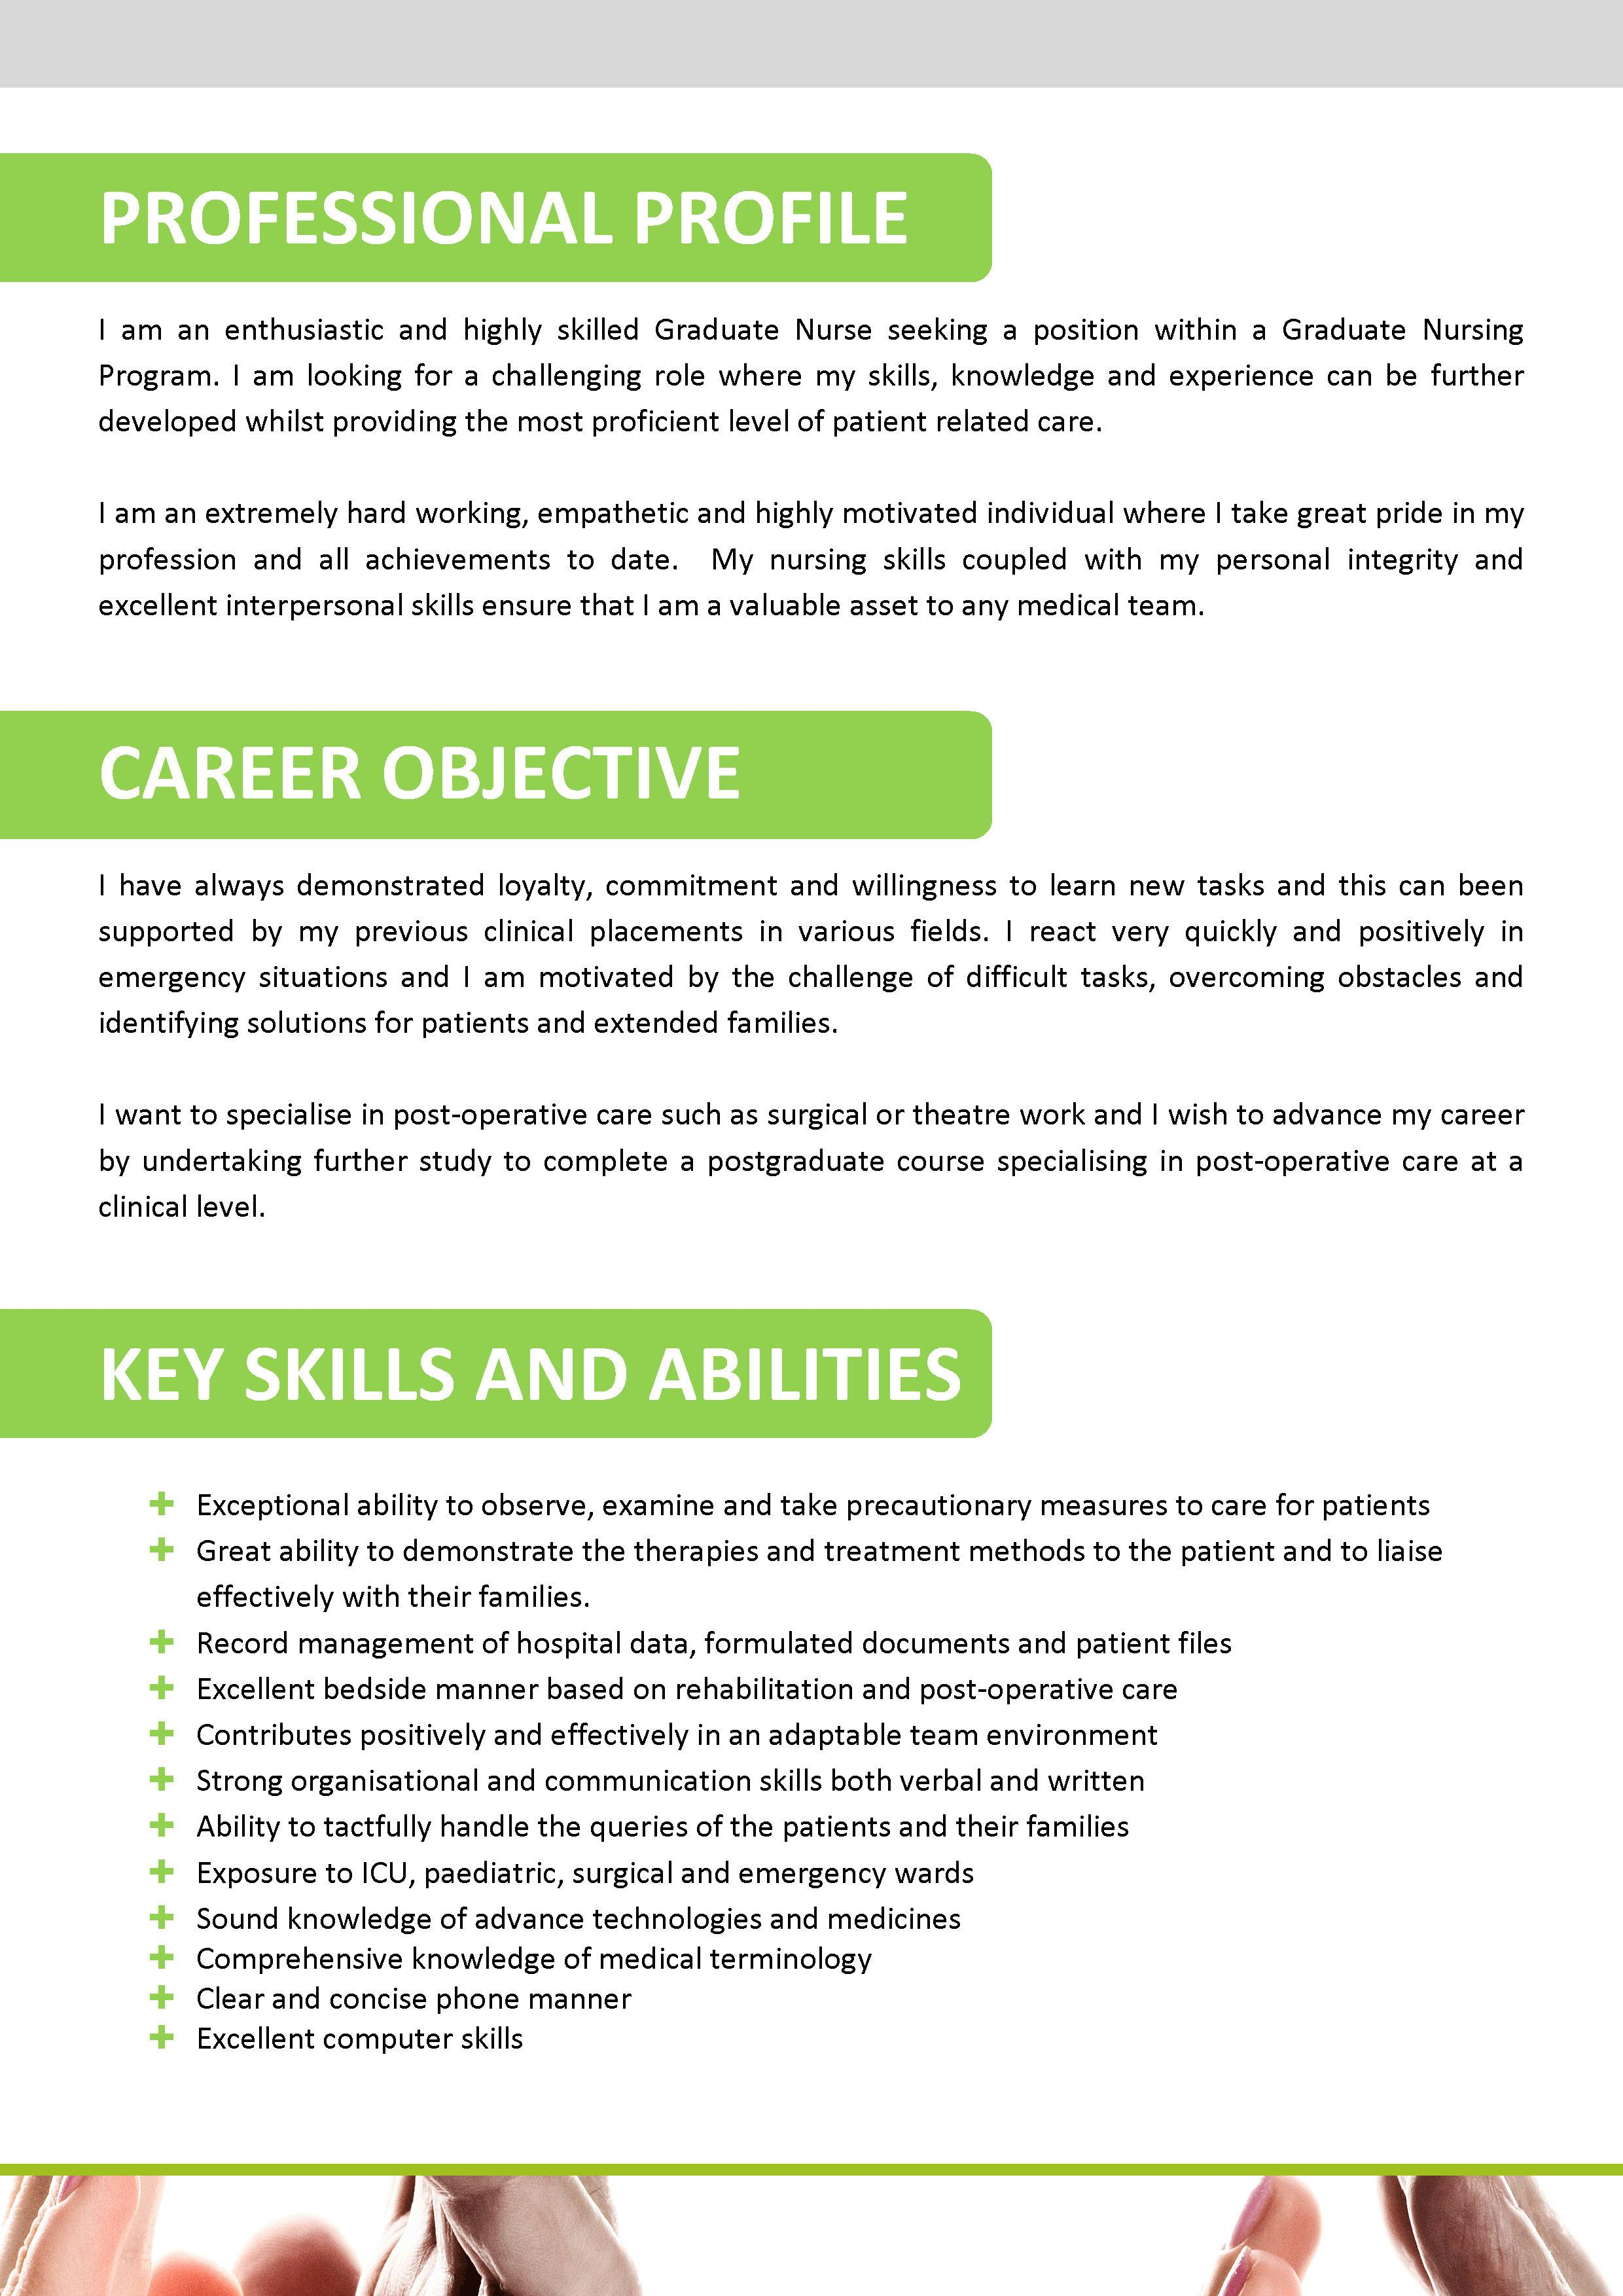 nursing resume template reviews cv resumes maker guide nursing resume template reviews utilization review nurse resume sample livecareer we can help professional resume